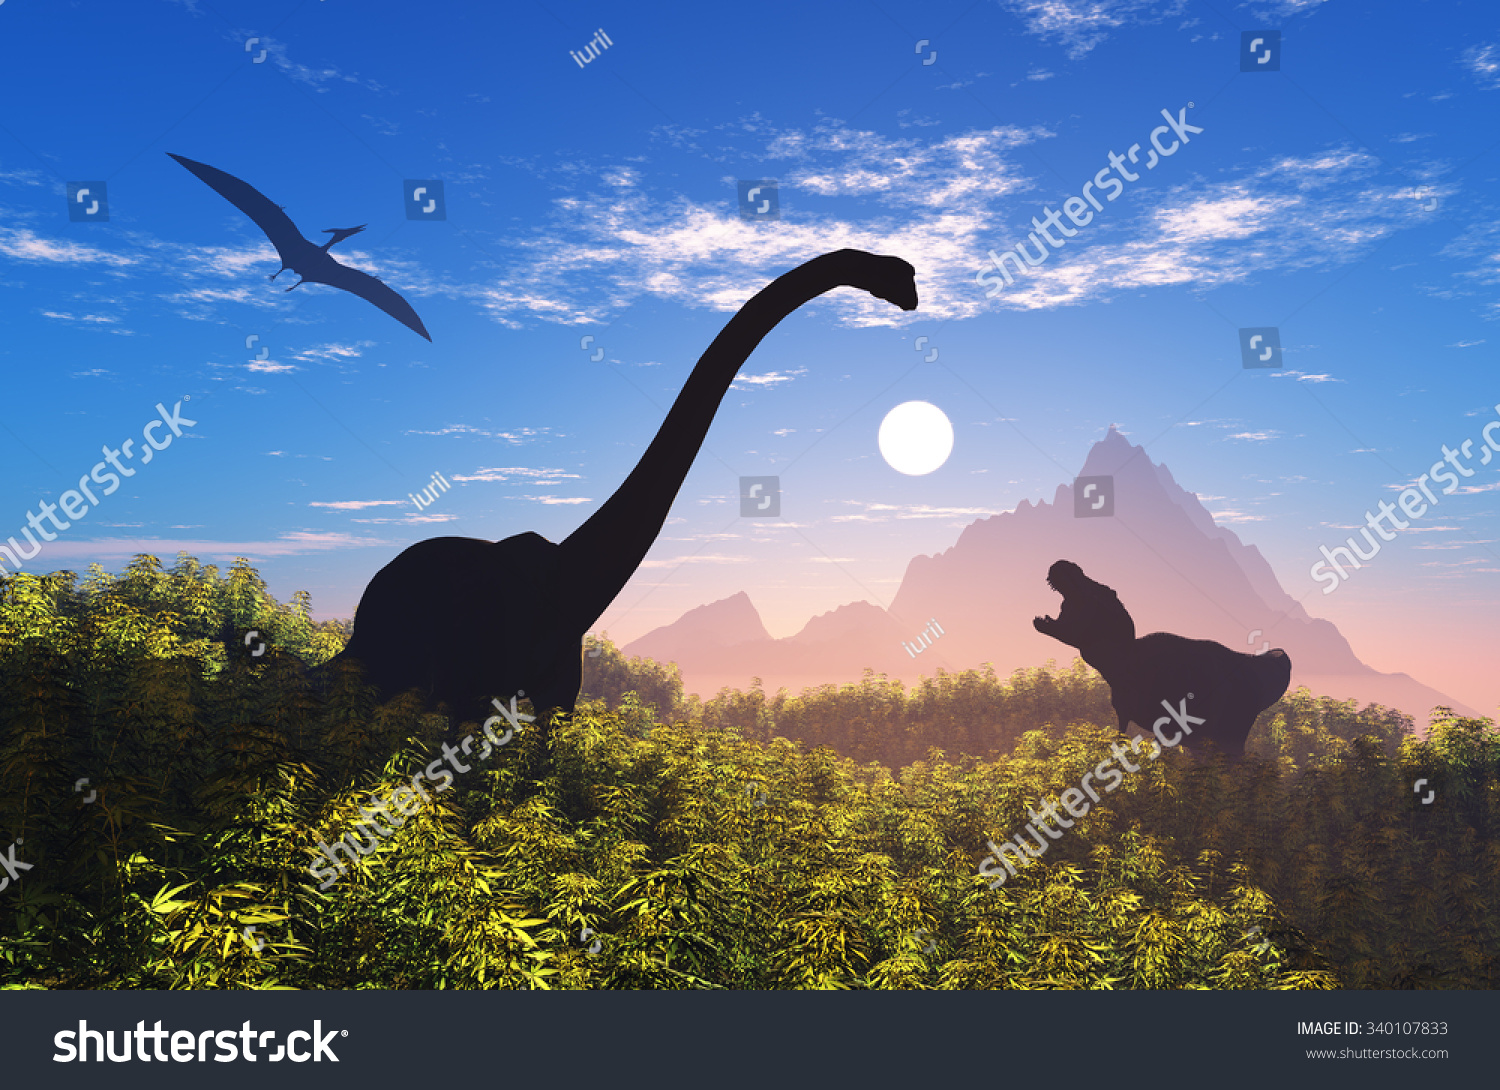 Giant dinosaur in the background of the colorful sky